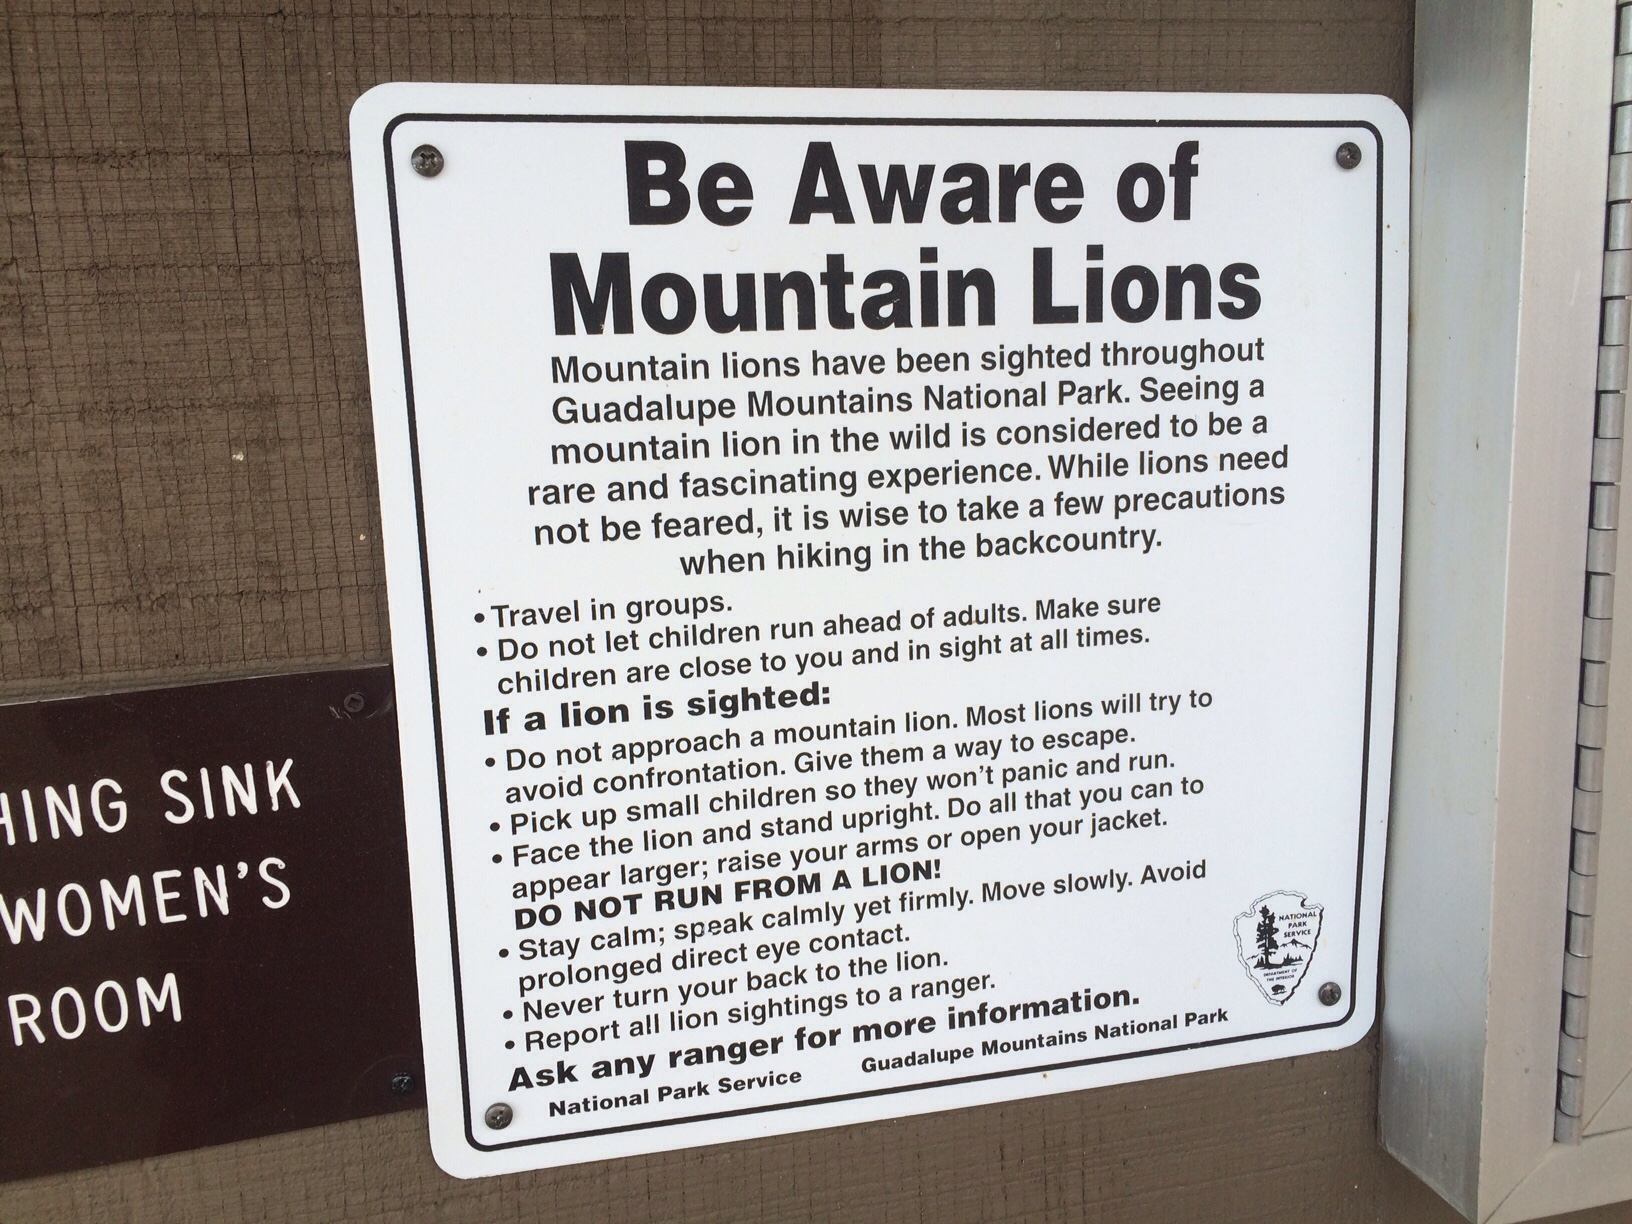 Beware of mountain lions sign